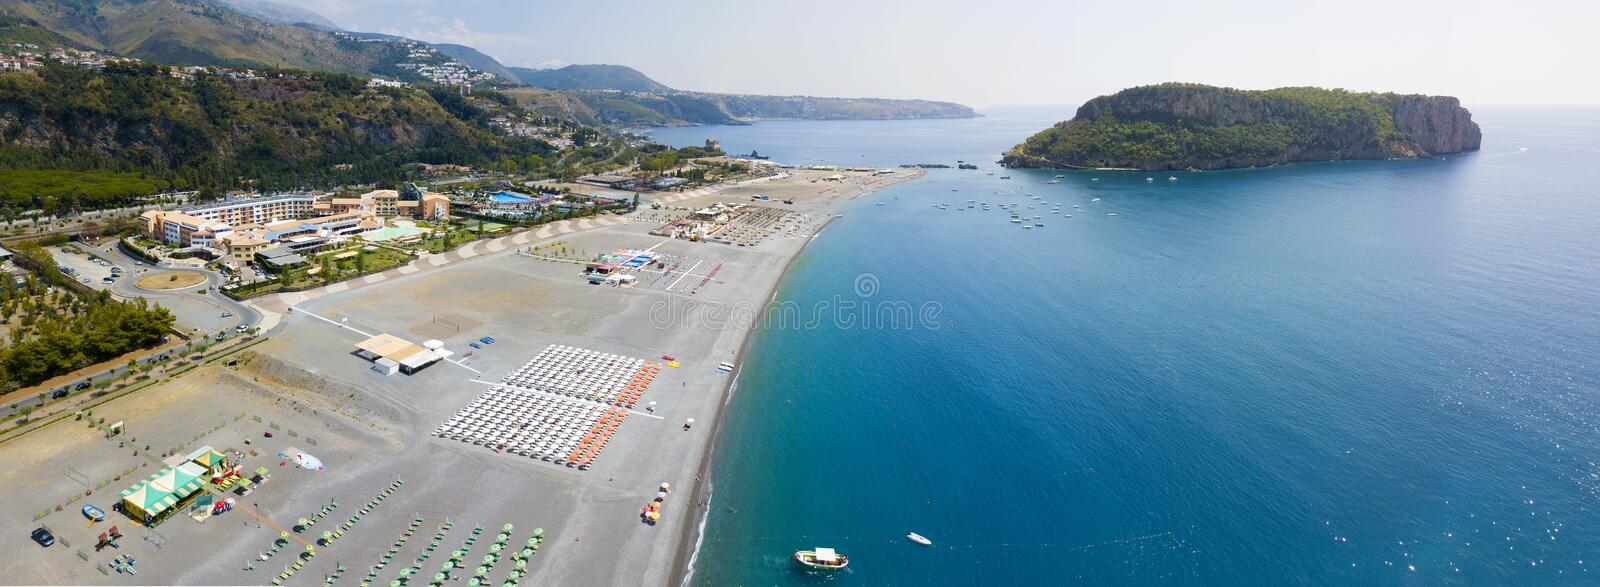 Dino Island, aerial view, island and beach, Praia a Mare, Cosenza Province, Calabria, Italy royalty free stock images